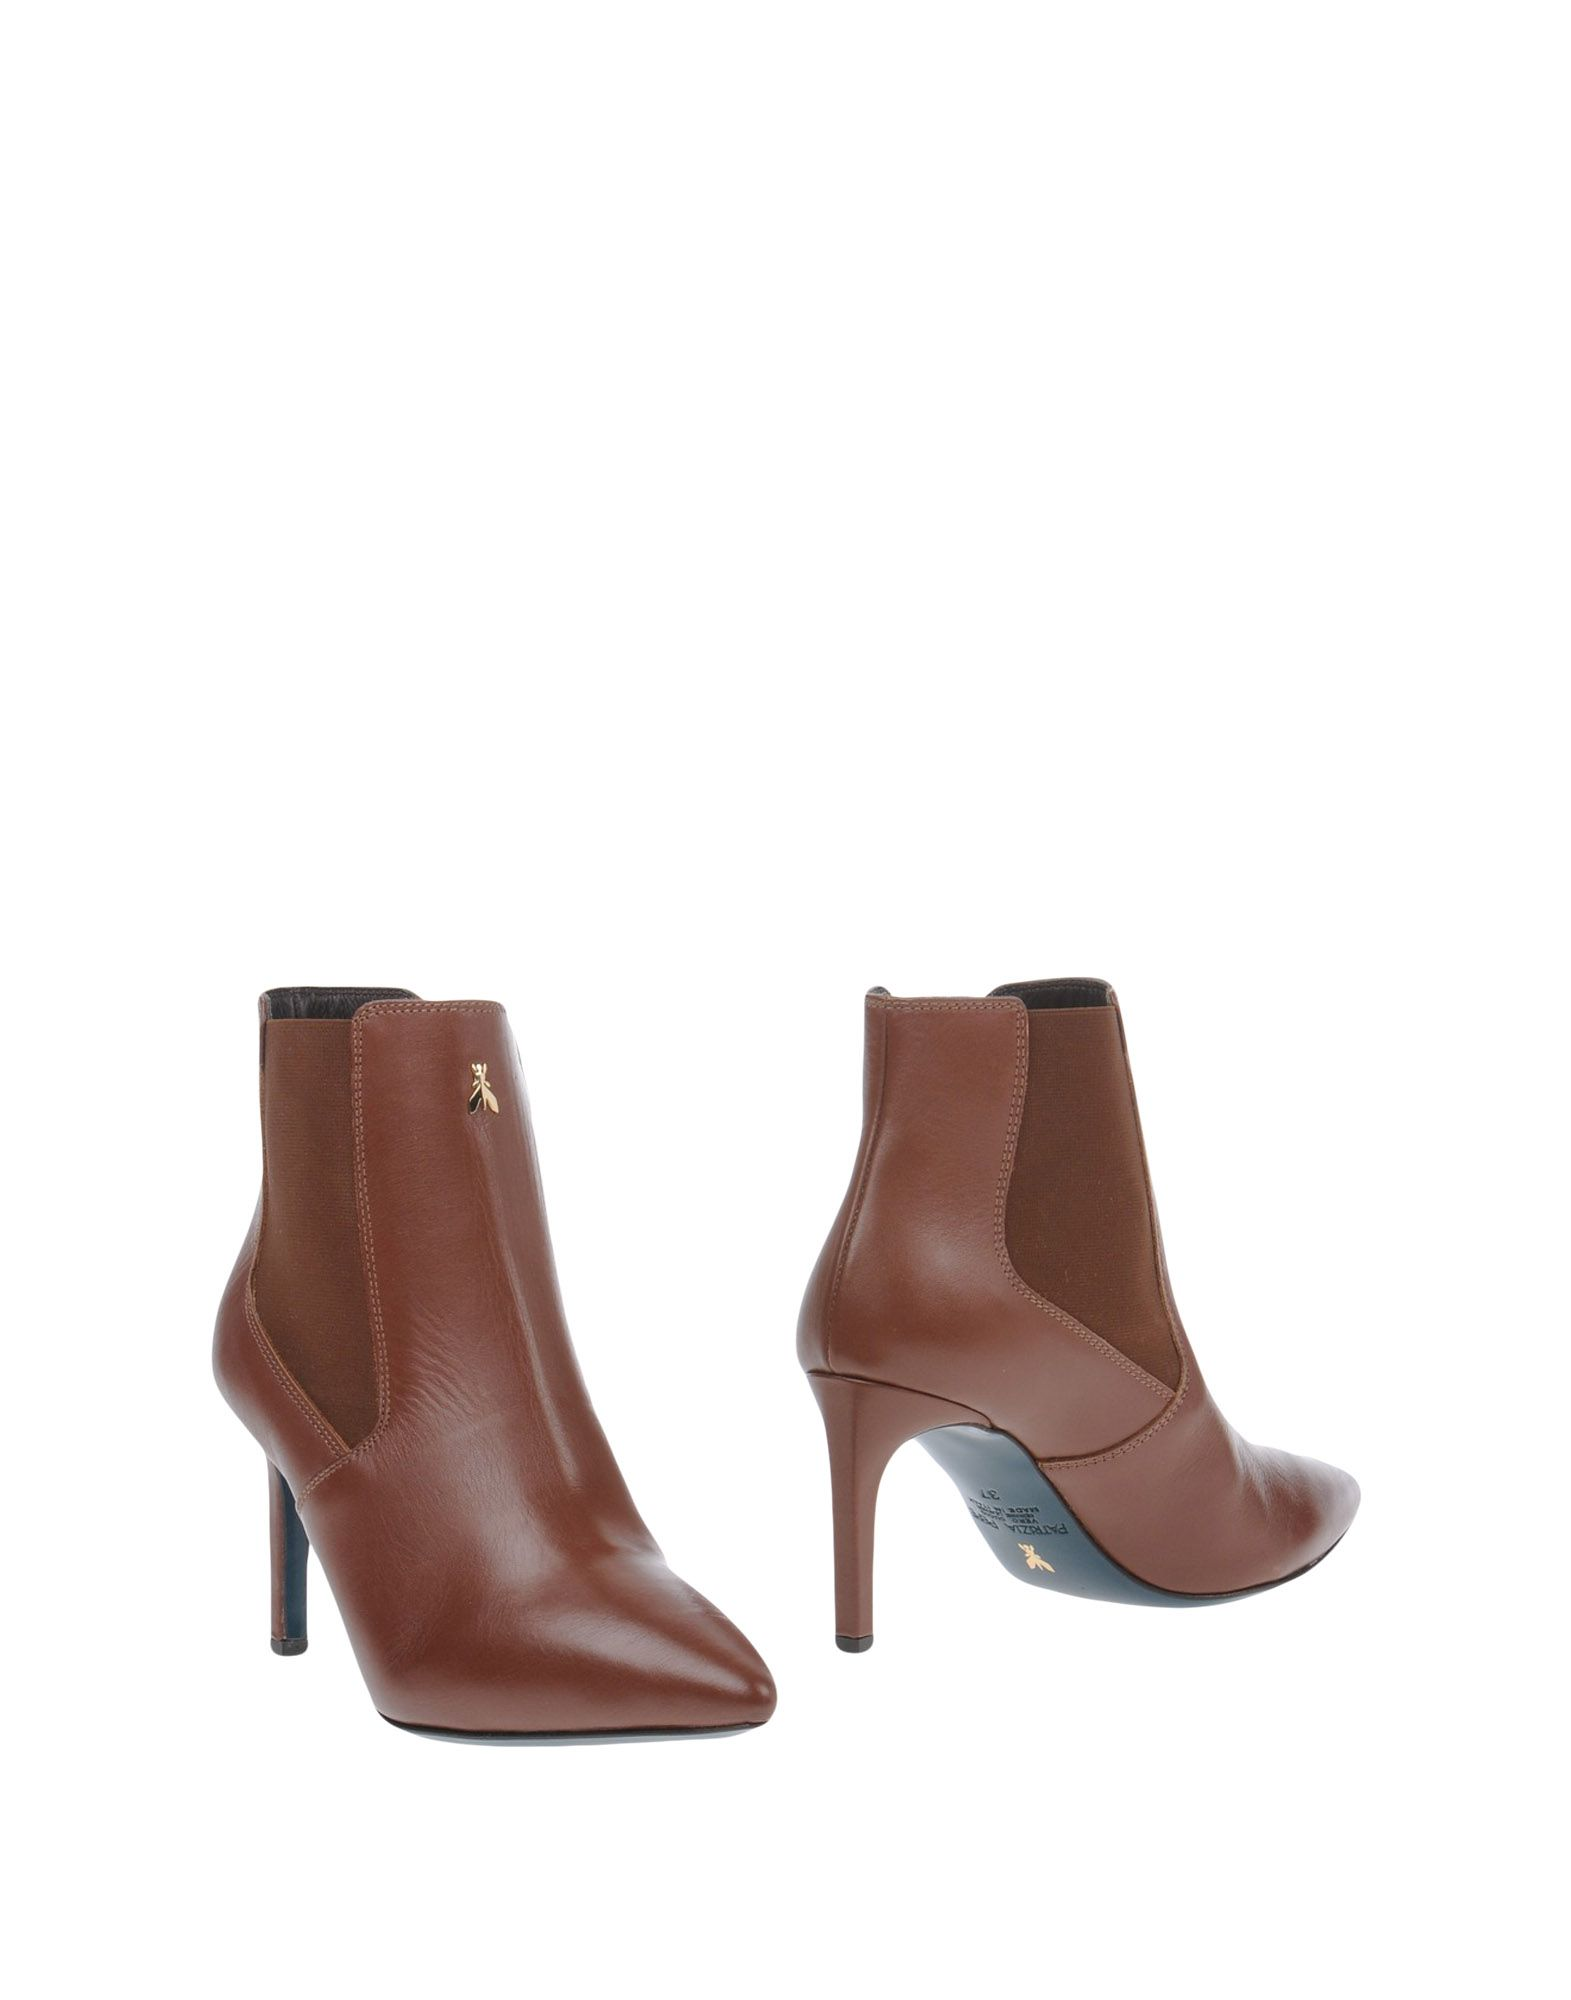 Patrizia Pepe Ankle Ankle Ankle Boot - Women Patrizia Pepe Ankle Boots online on  United Kingdom - 11324345WM 99a201